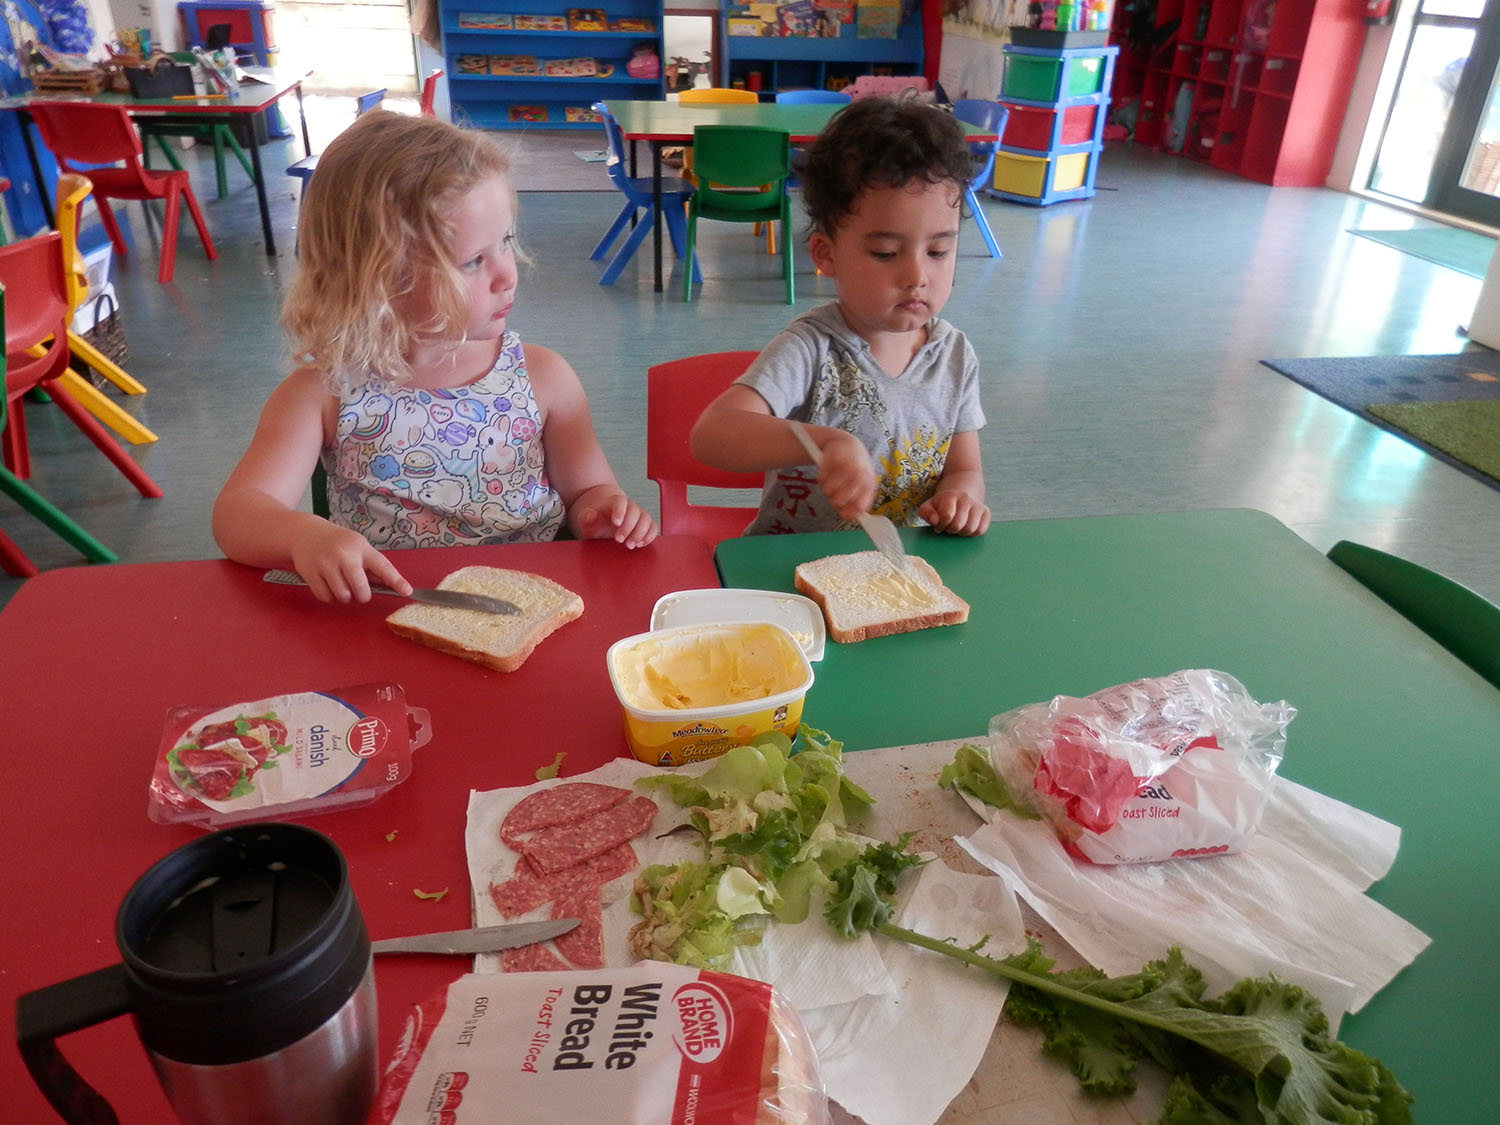 Making sandwiches with lettuce from our garden